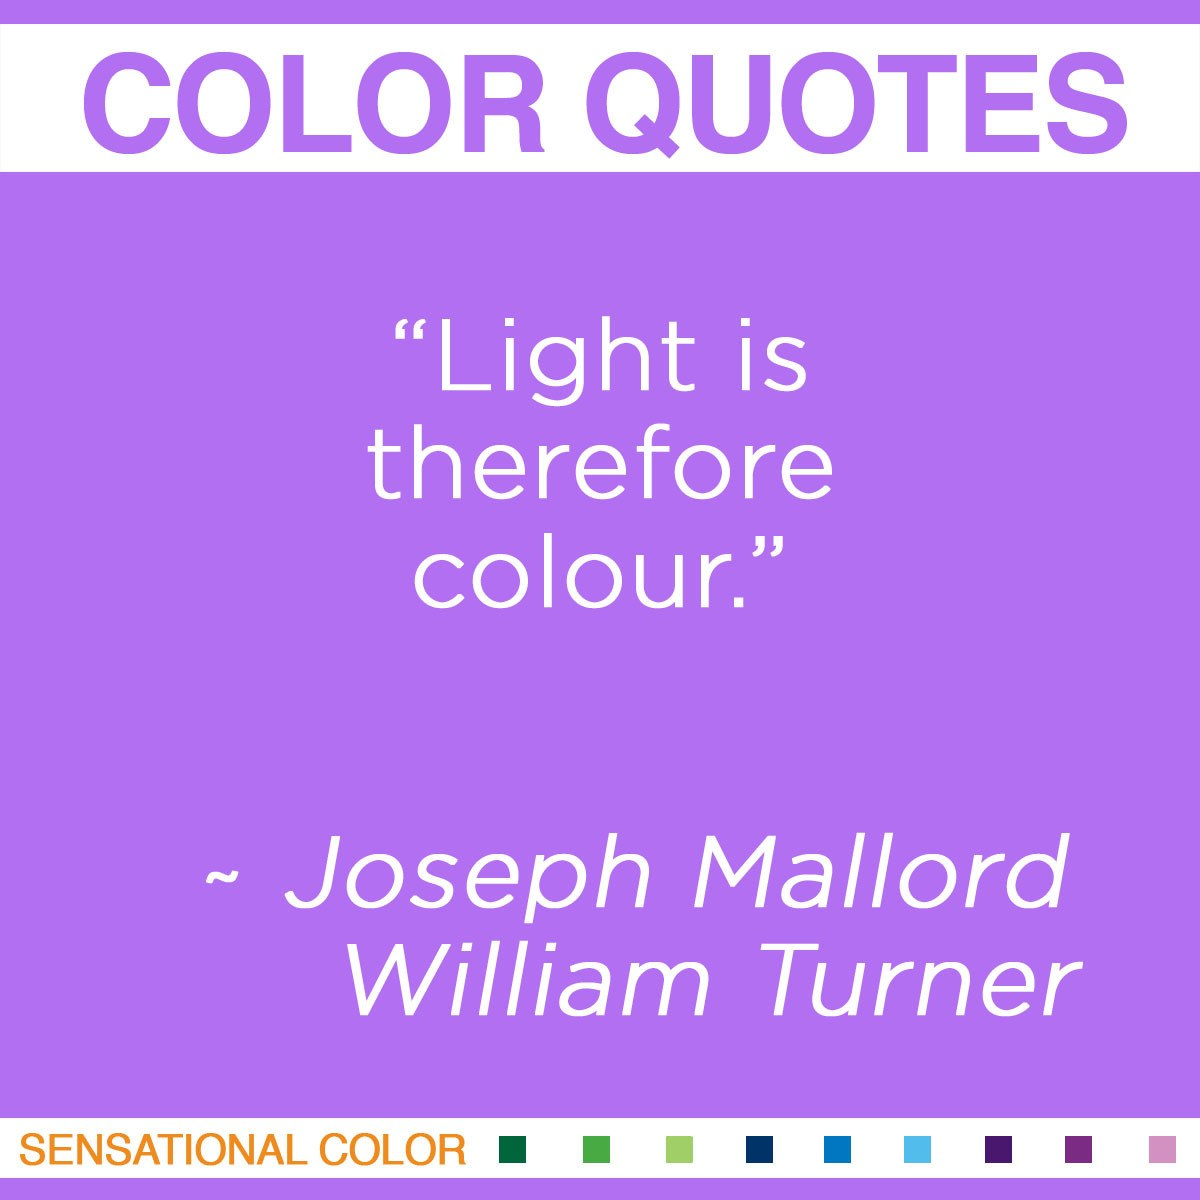 """Light is therefore colour."" - Joseph Mallord William Turner"